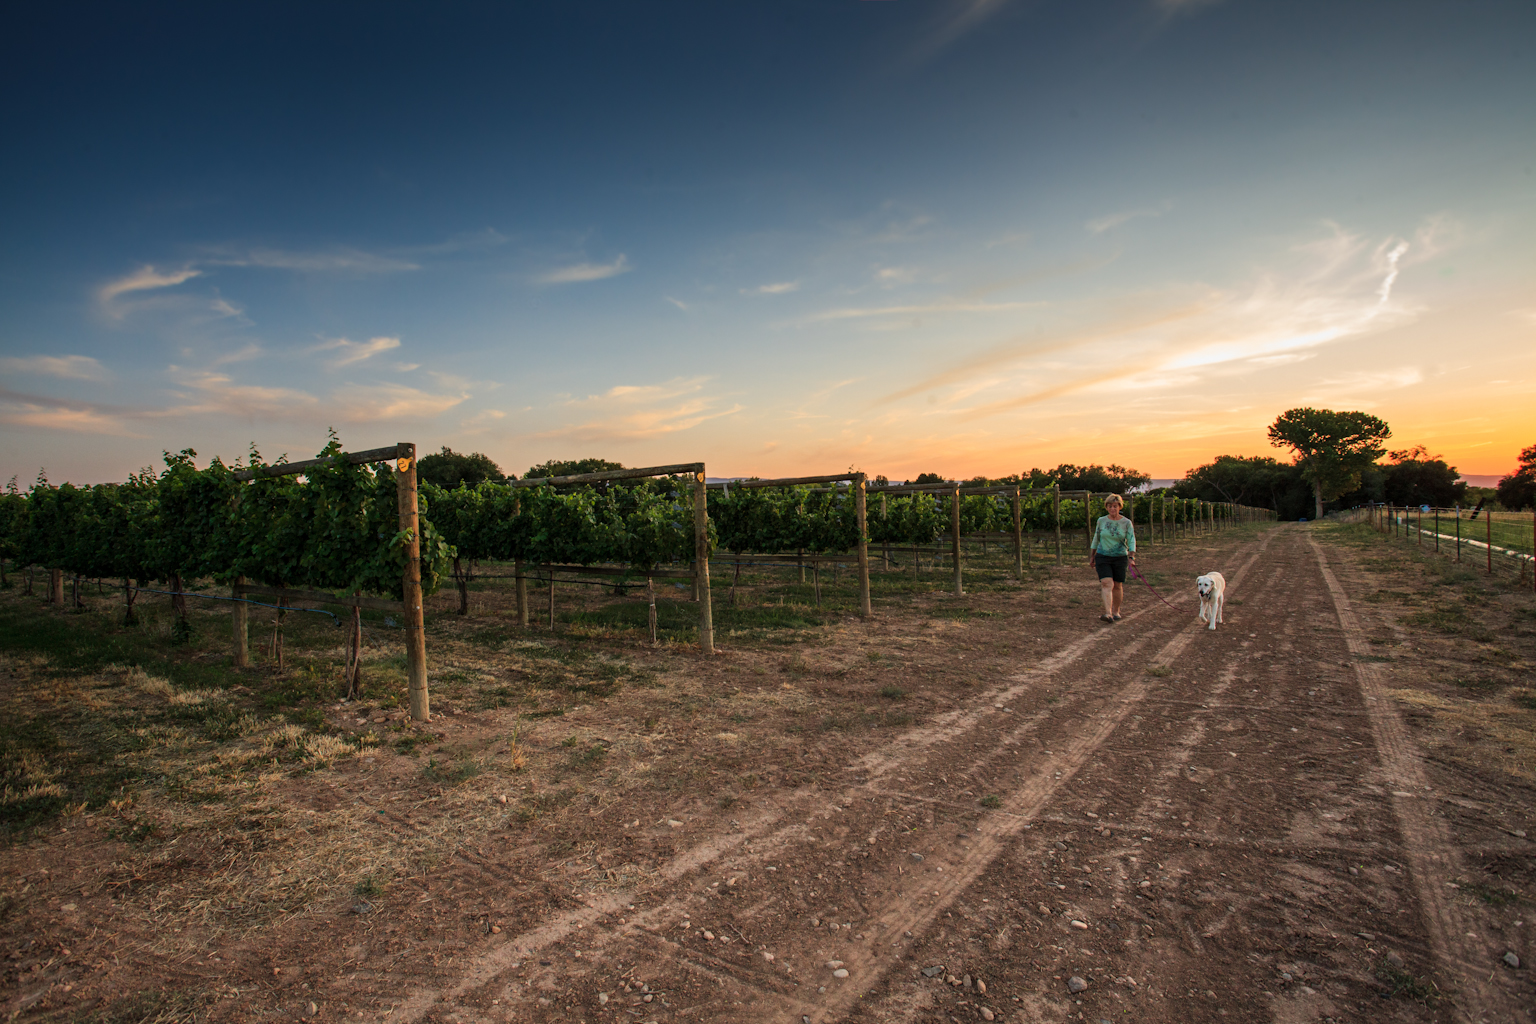 A woman walking her dog in a vineyard at sunset.